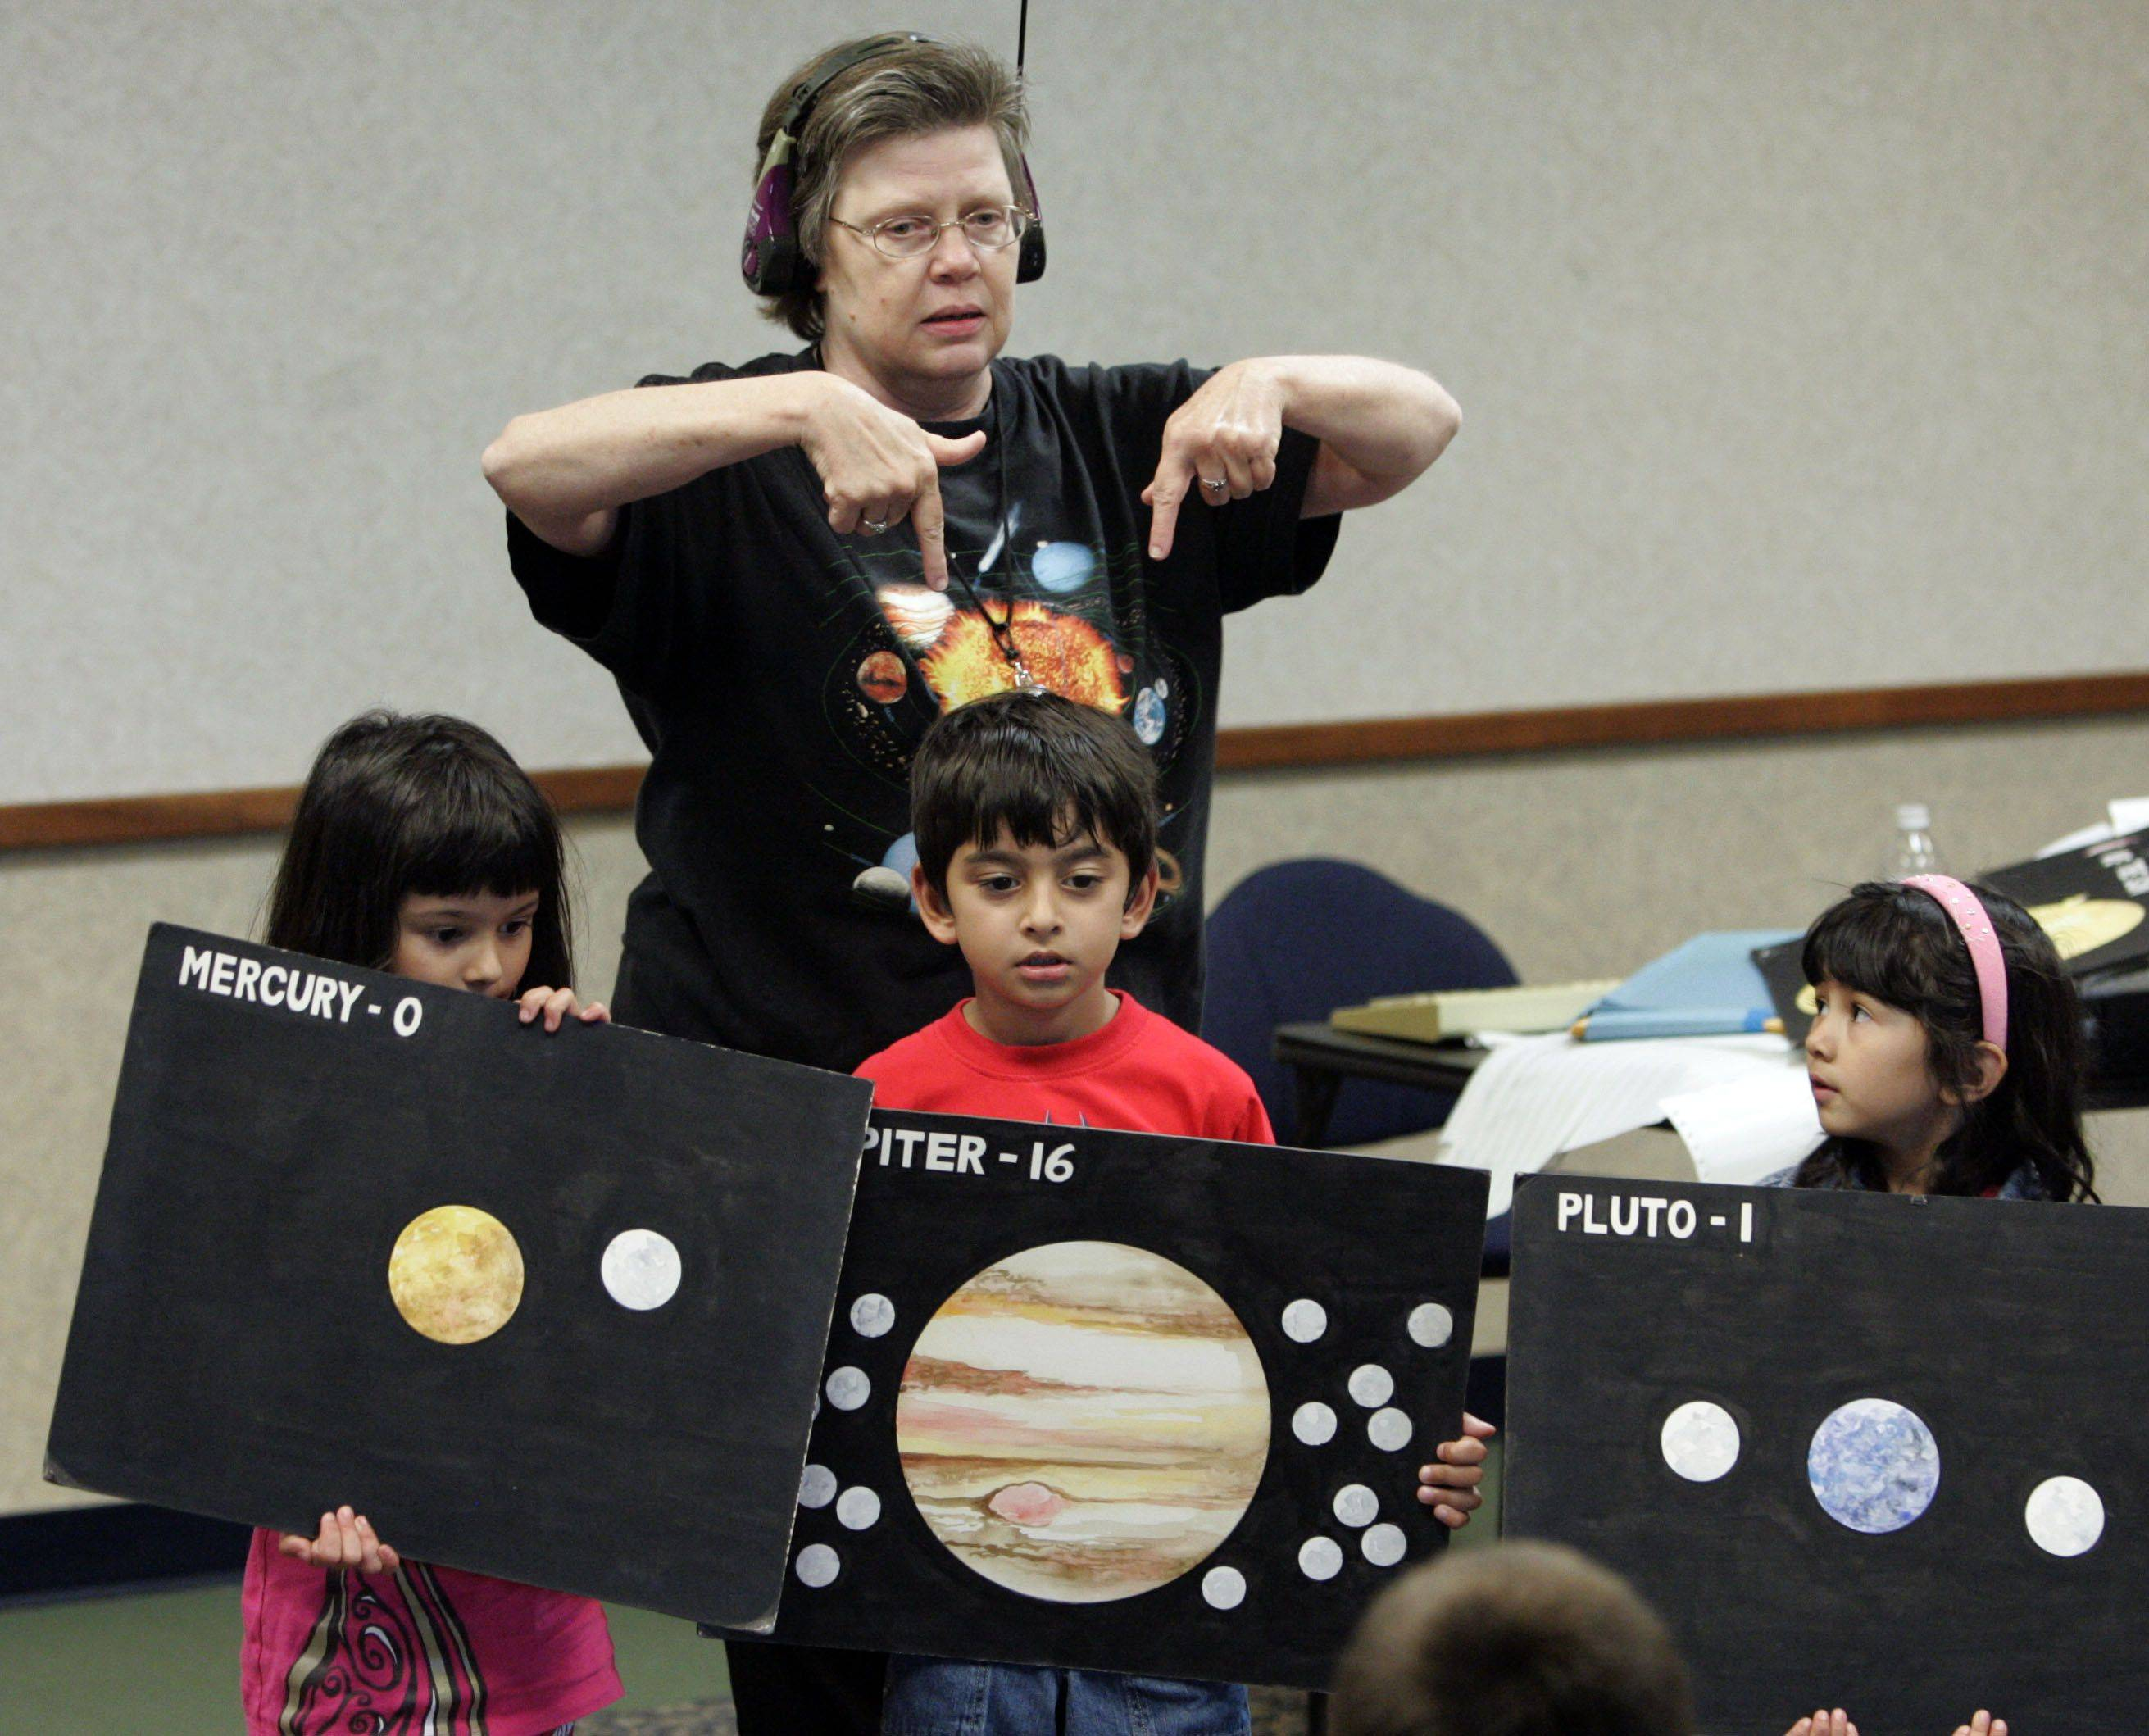 Actor Mary Heitert of Carol Stream with The Mystery Shop helps kids solve the mystery of the missing moon with the help of Jasmine Khaytin, 7 of Barrington, left, Morya Odak, 6 of Mundelein and Shaina Khaytin, 5 of Barrington during a program at Fremont Public Library Monday afternoon.